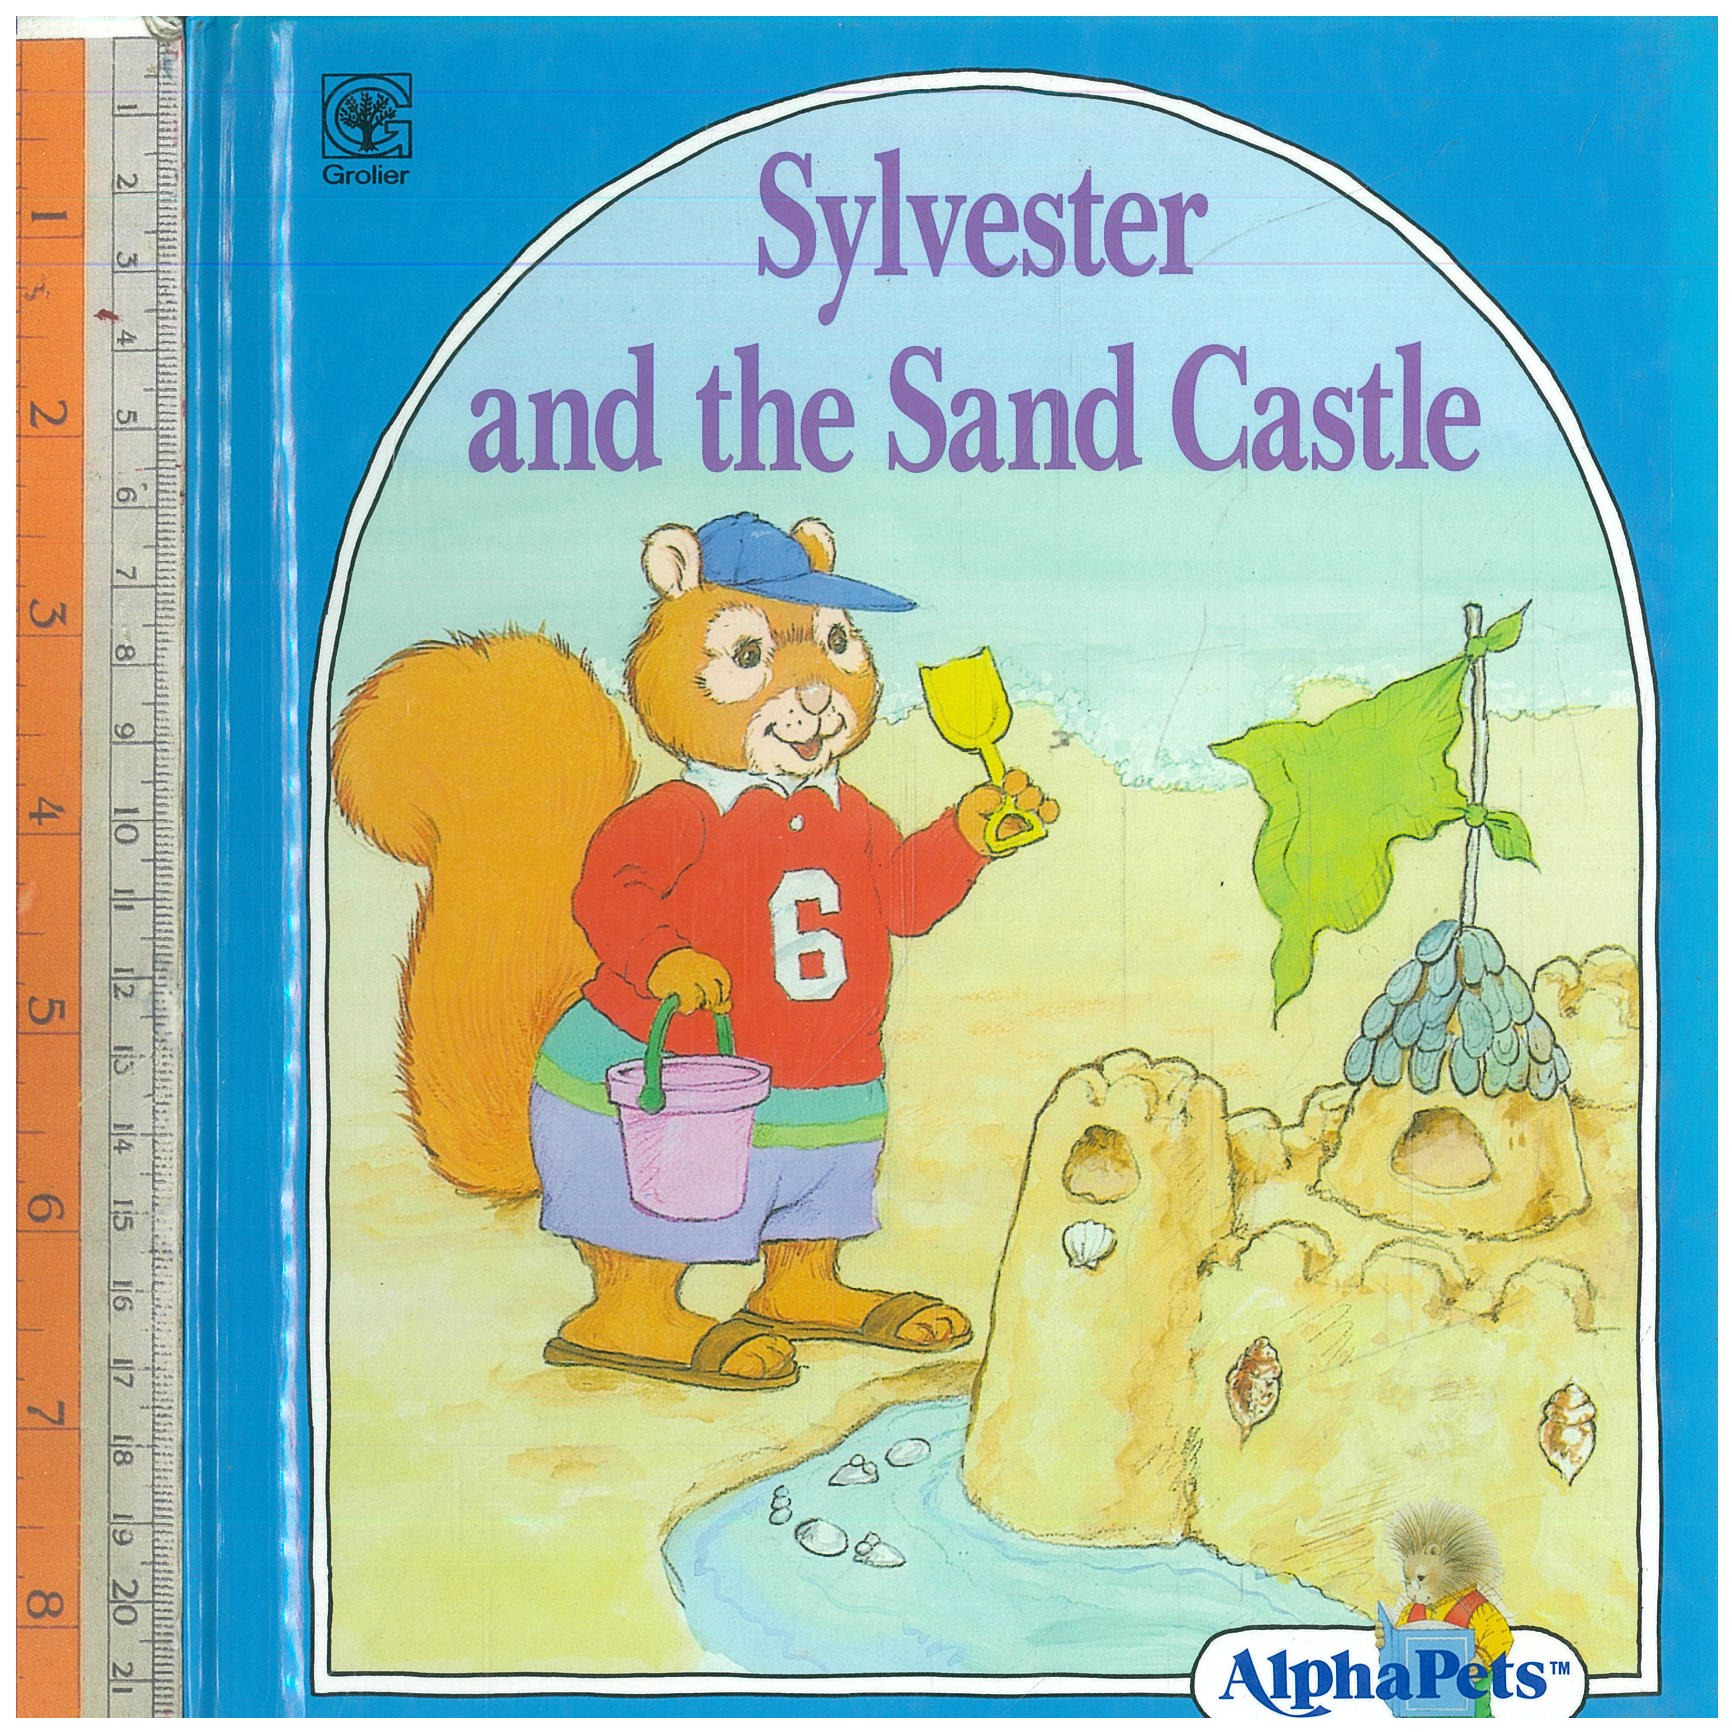 Sylvester and the Sand Castle